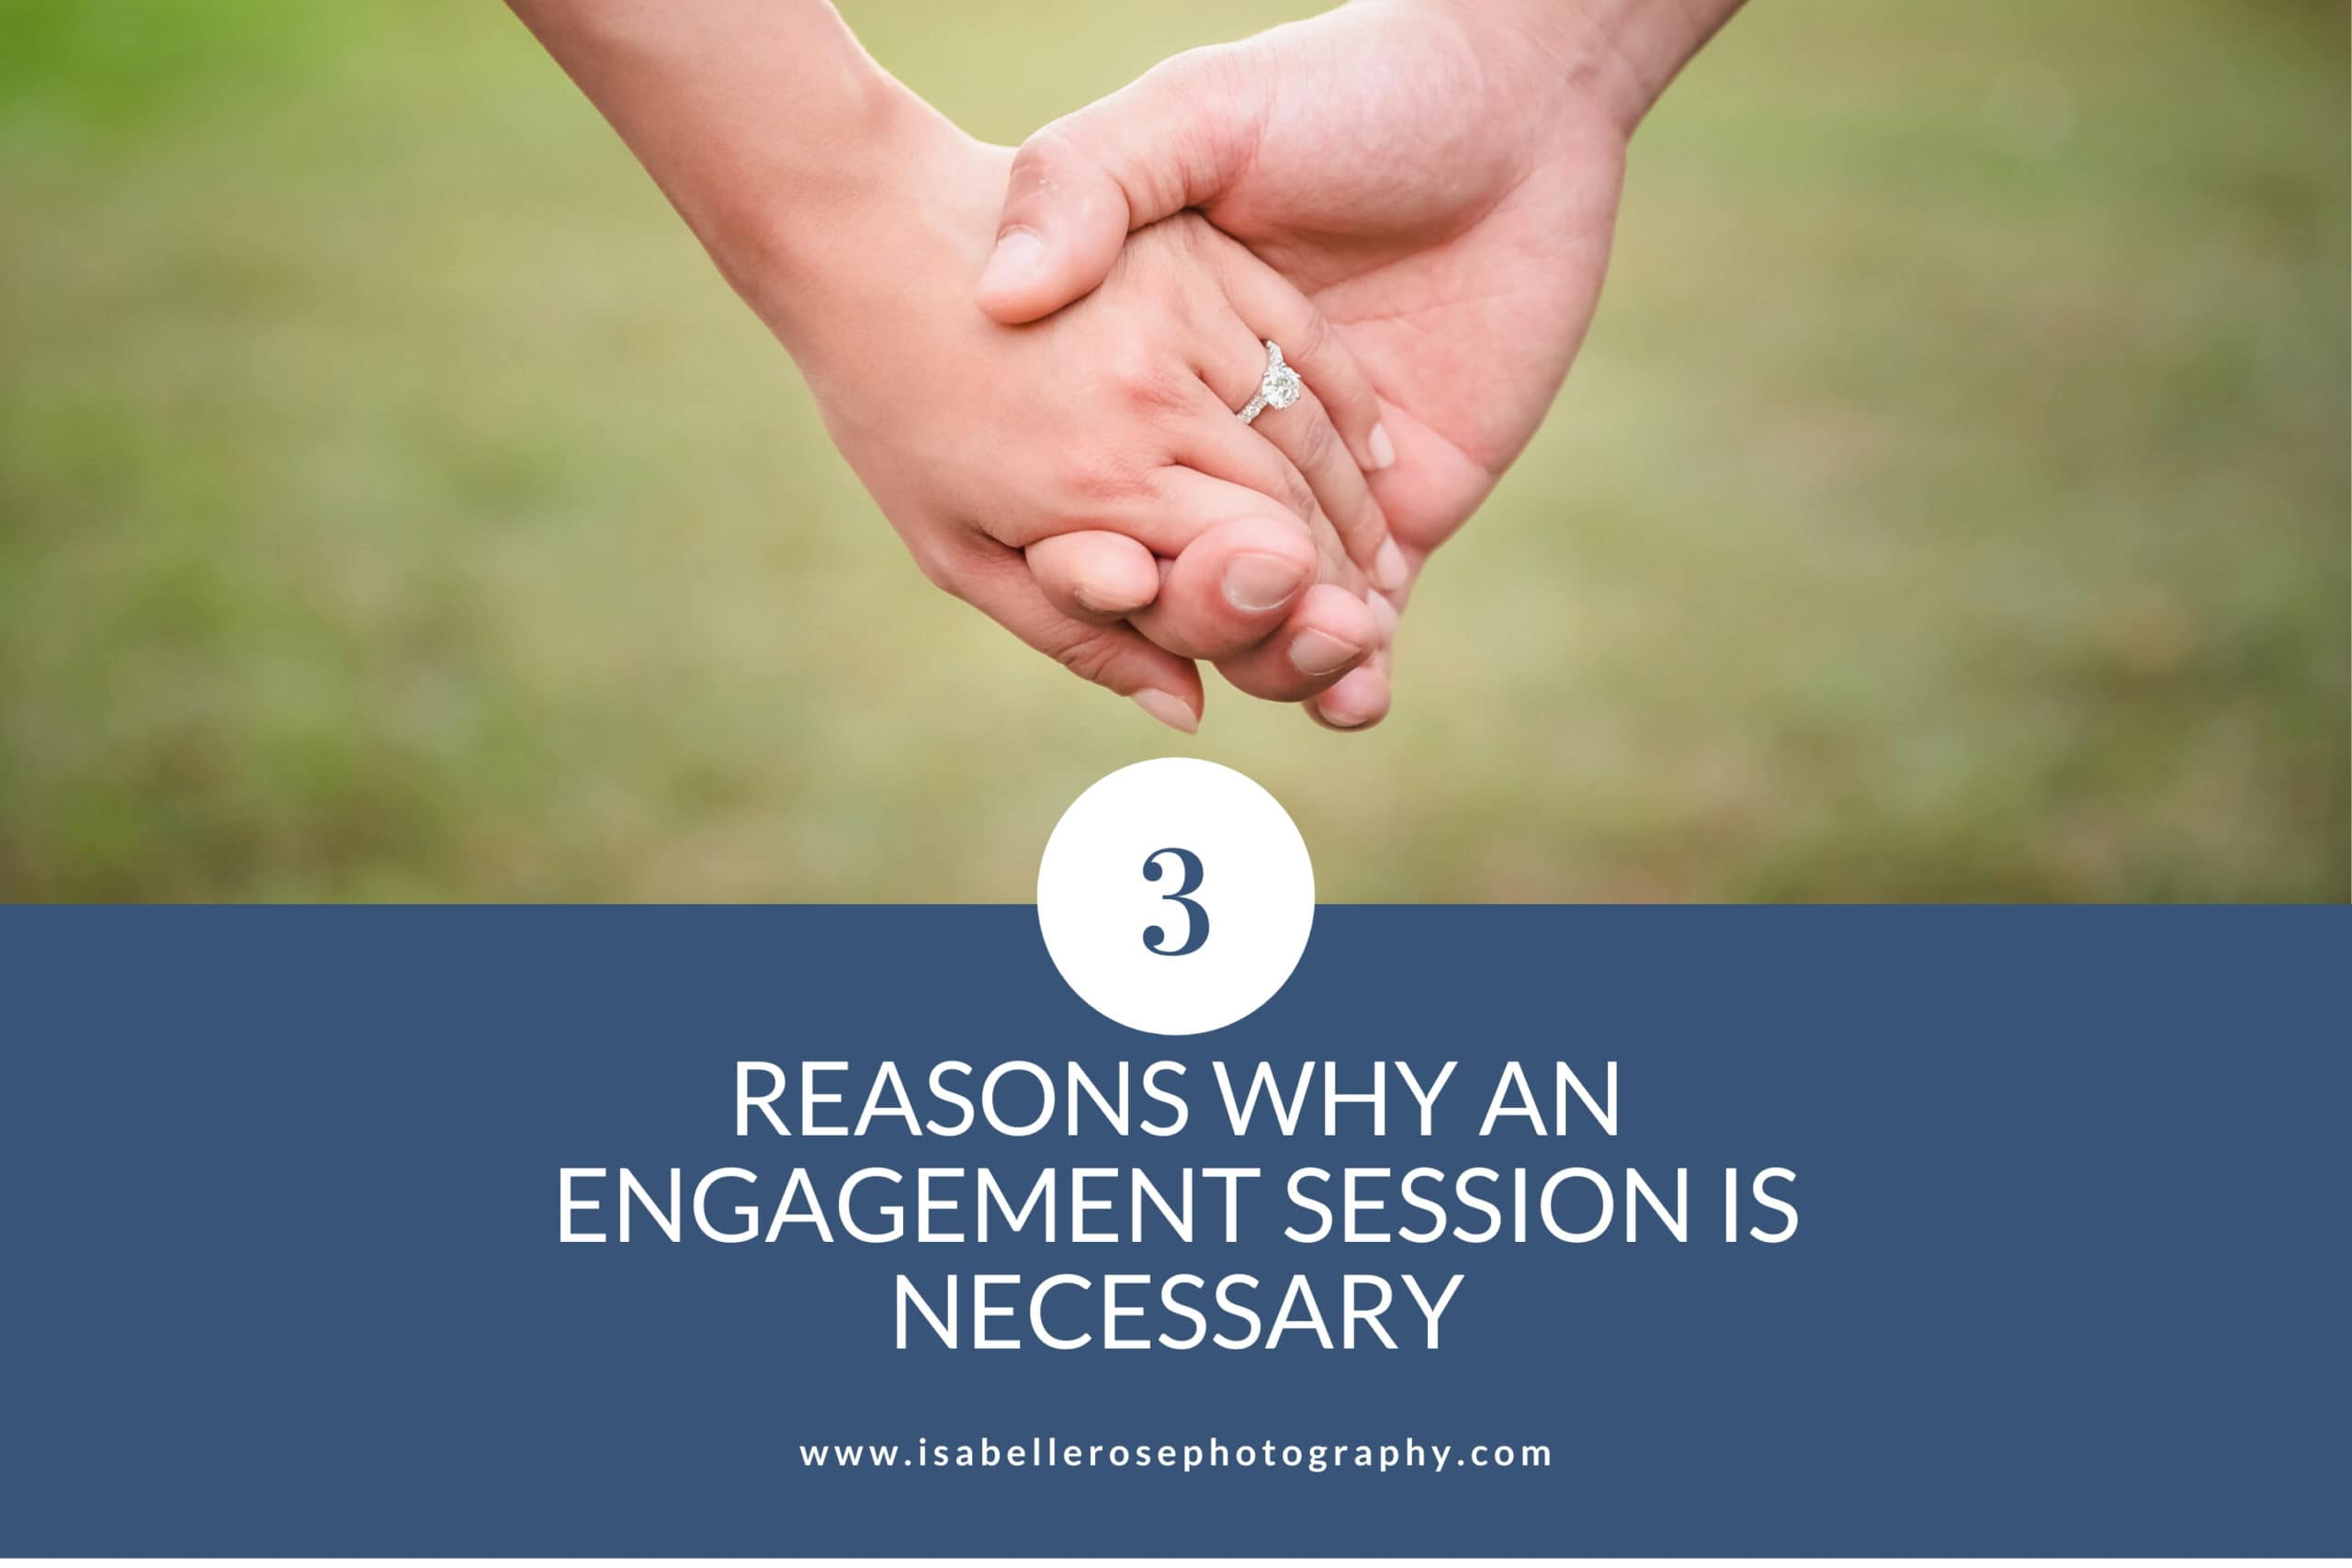 3 Reasons Why an Engagement Session is Necessary | Baton Rouge Area Wedding Photographer